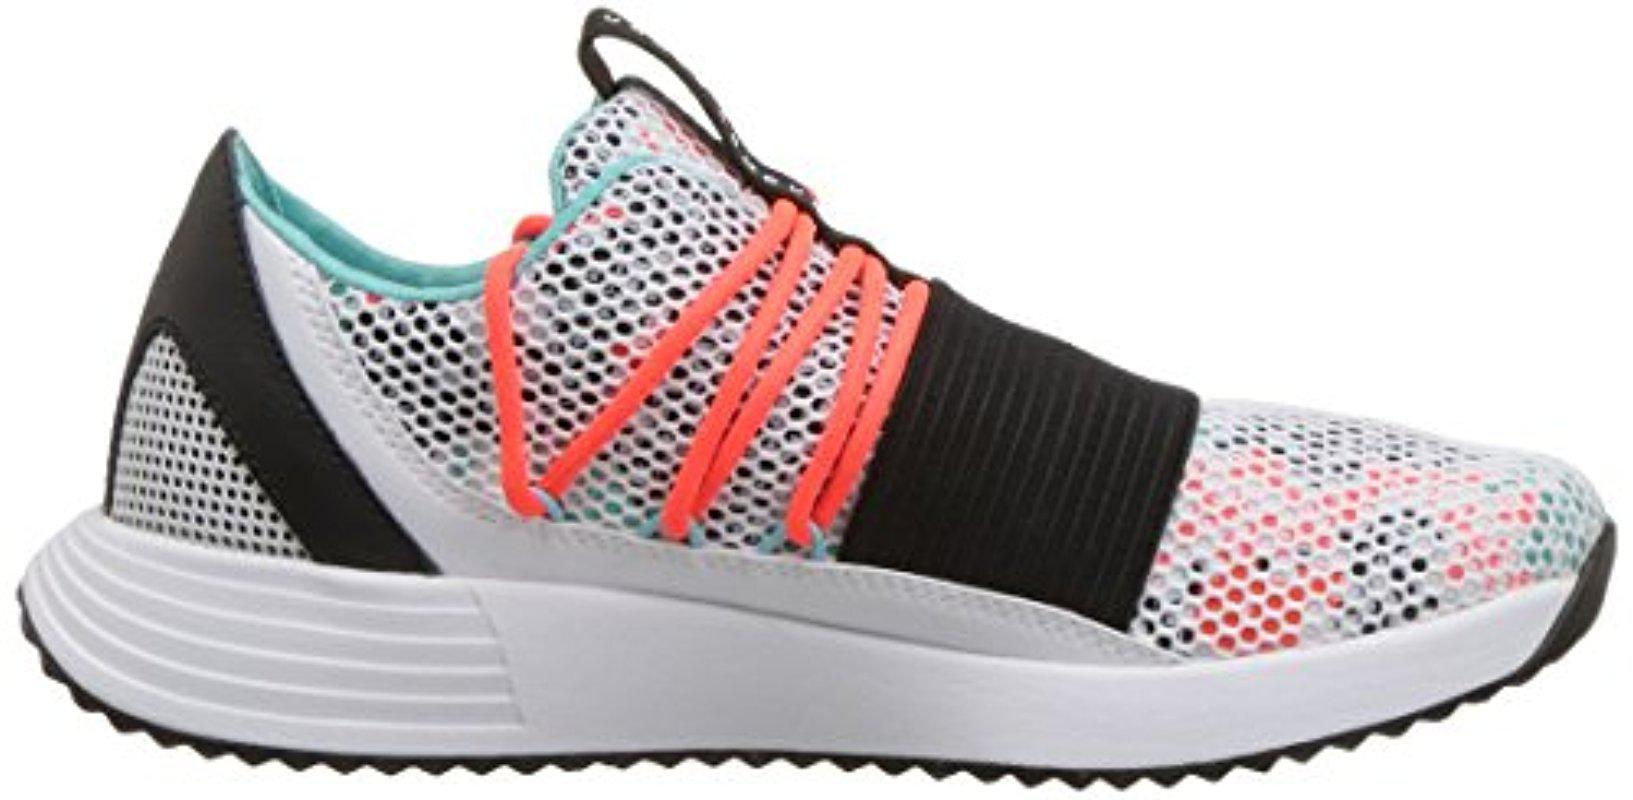 Under Armour Breathe Lace in White/Neon